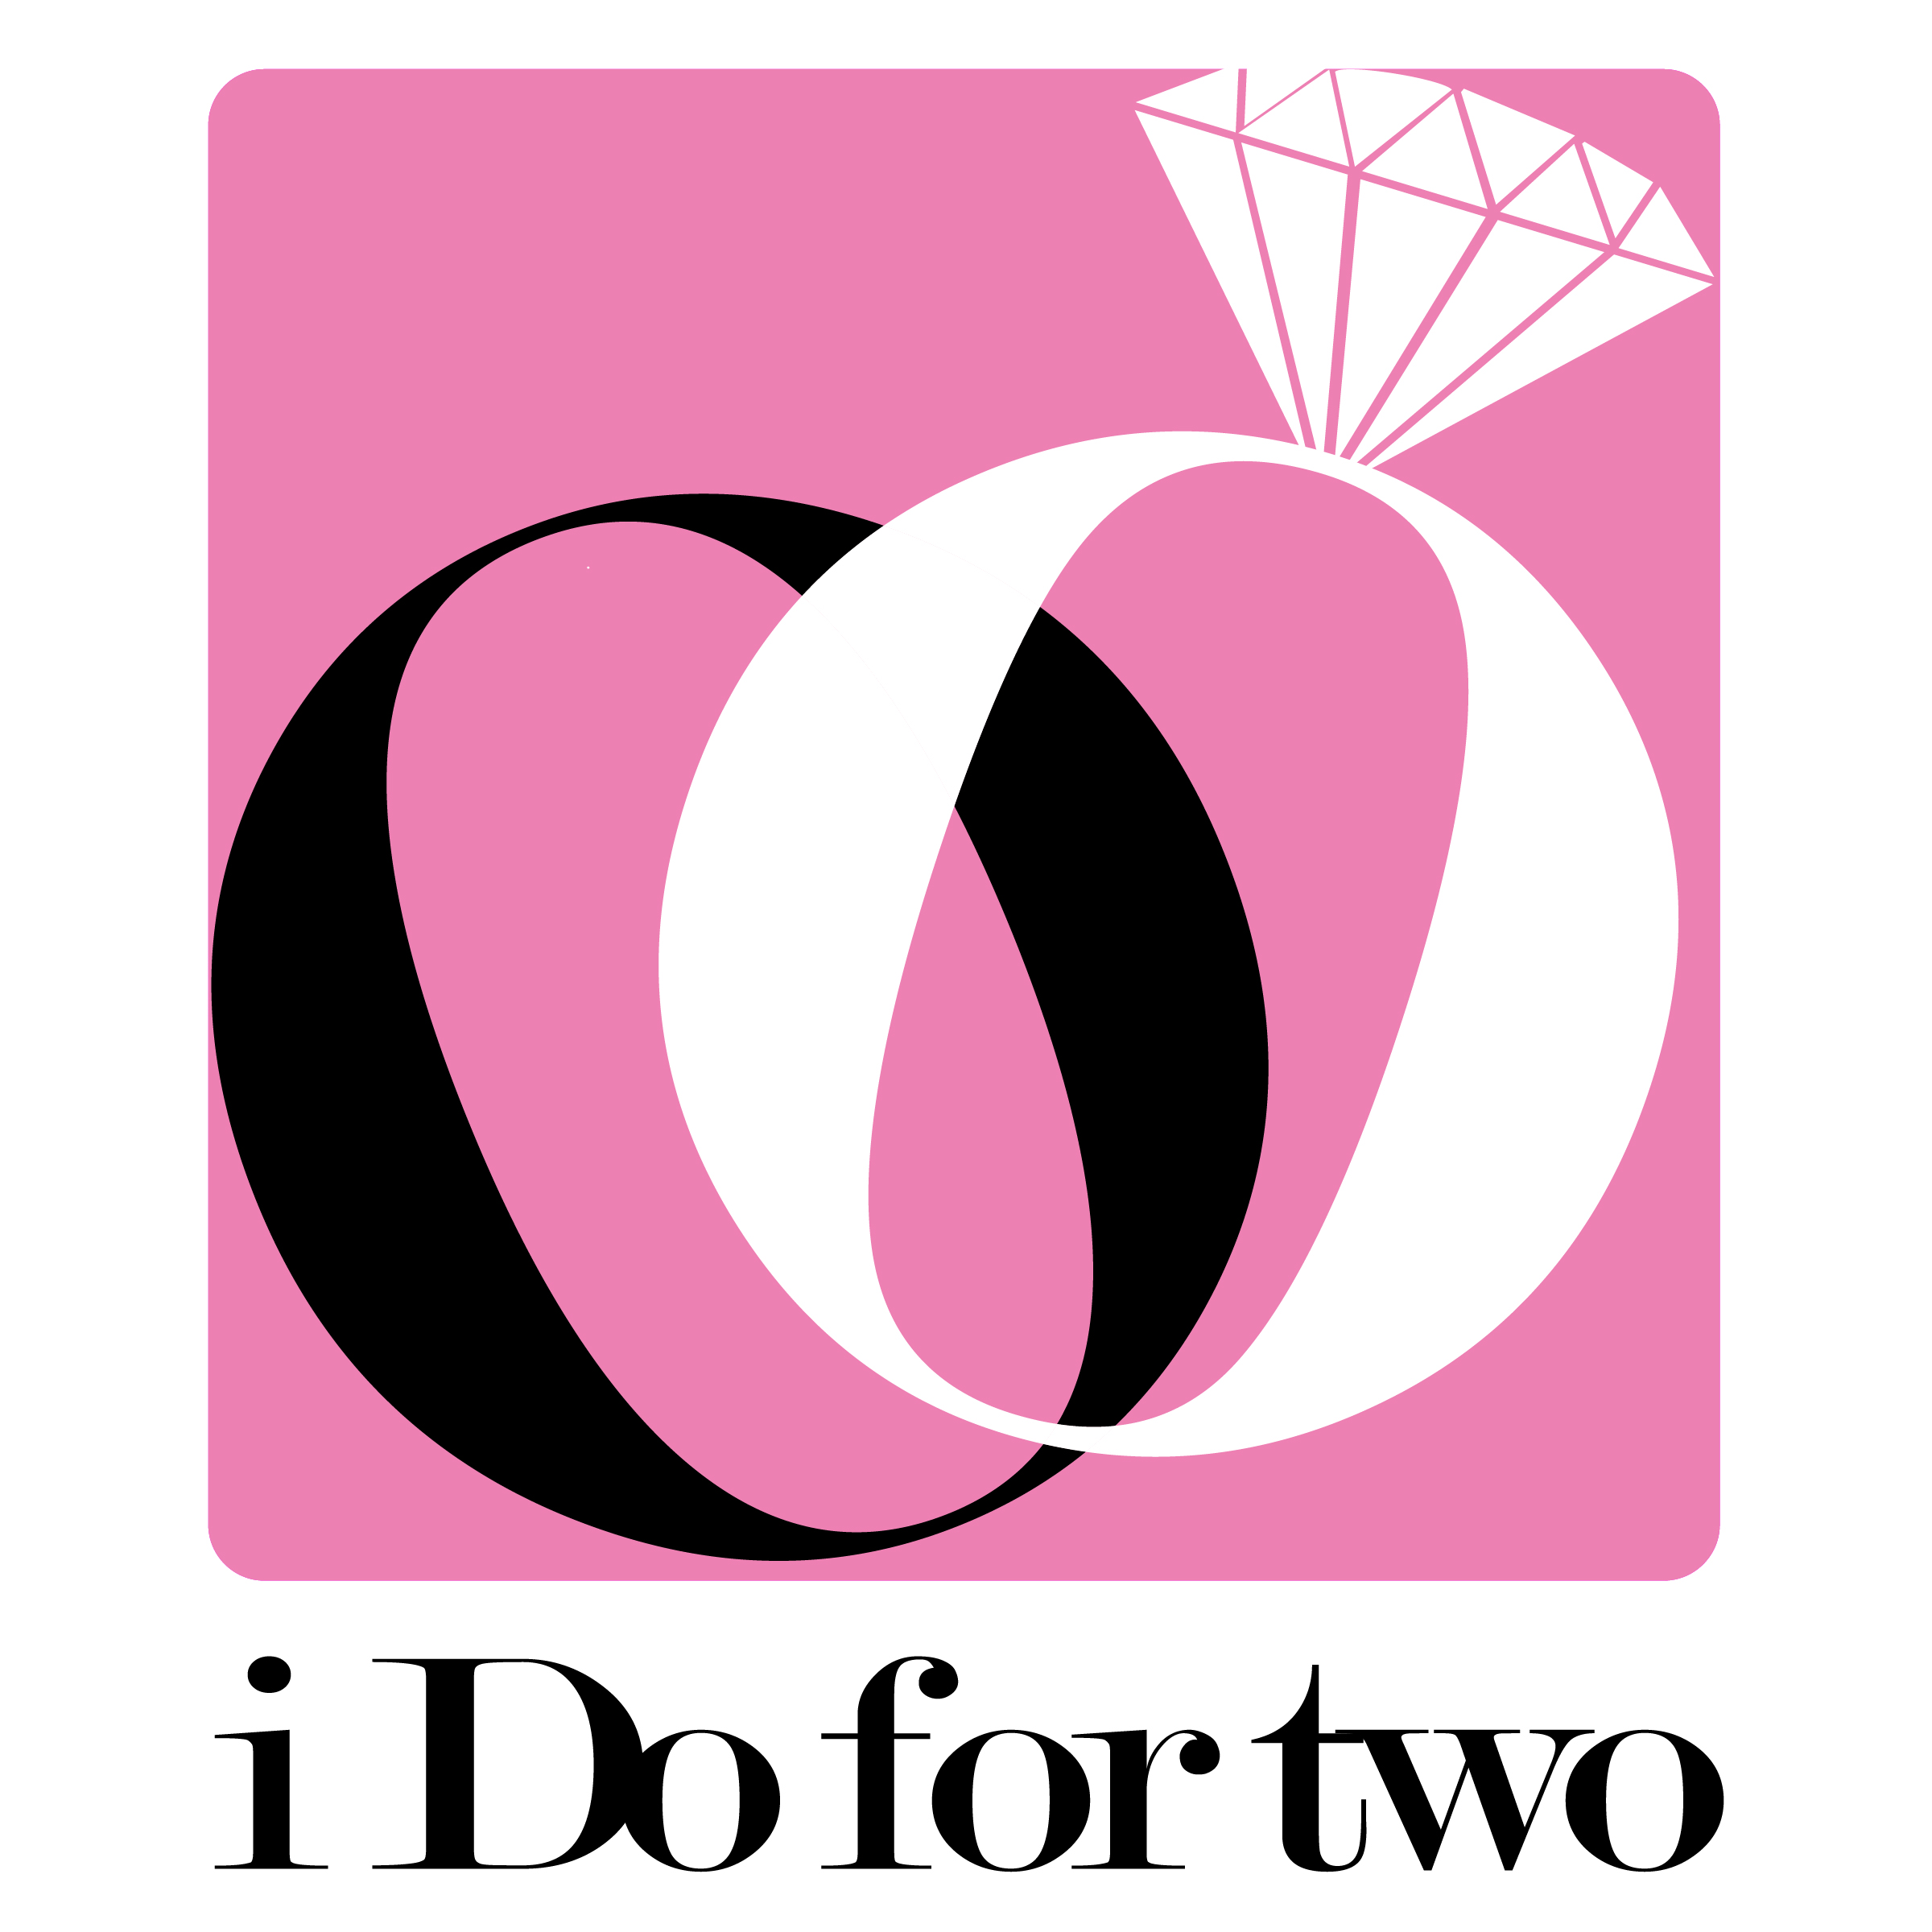 8x8-i do for two-01.jpg